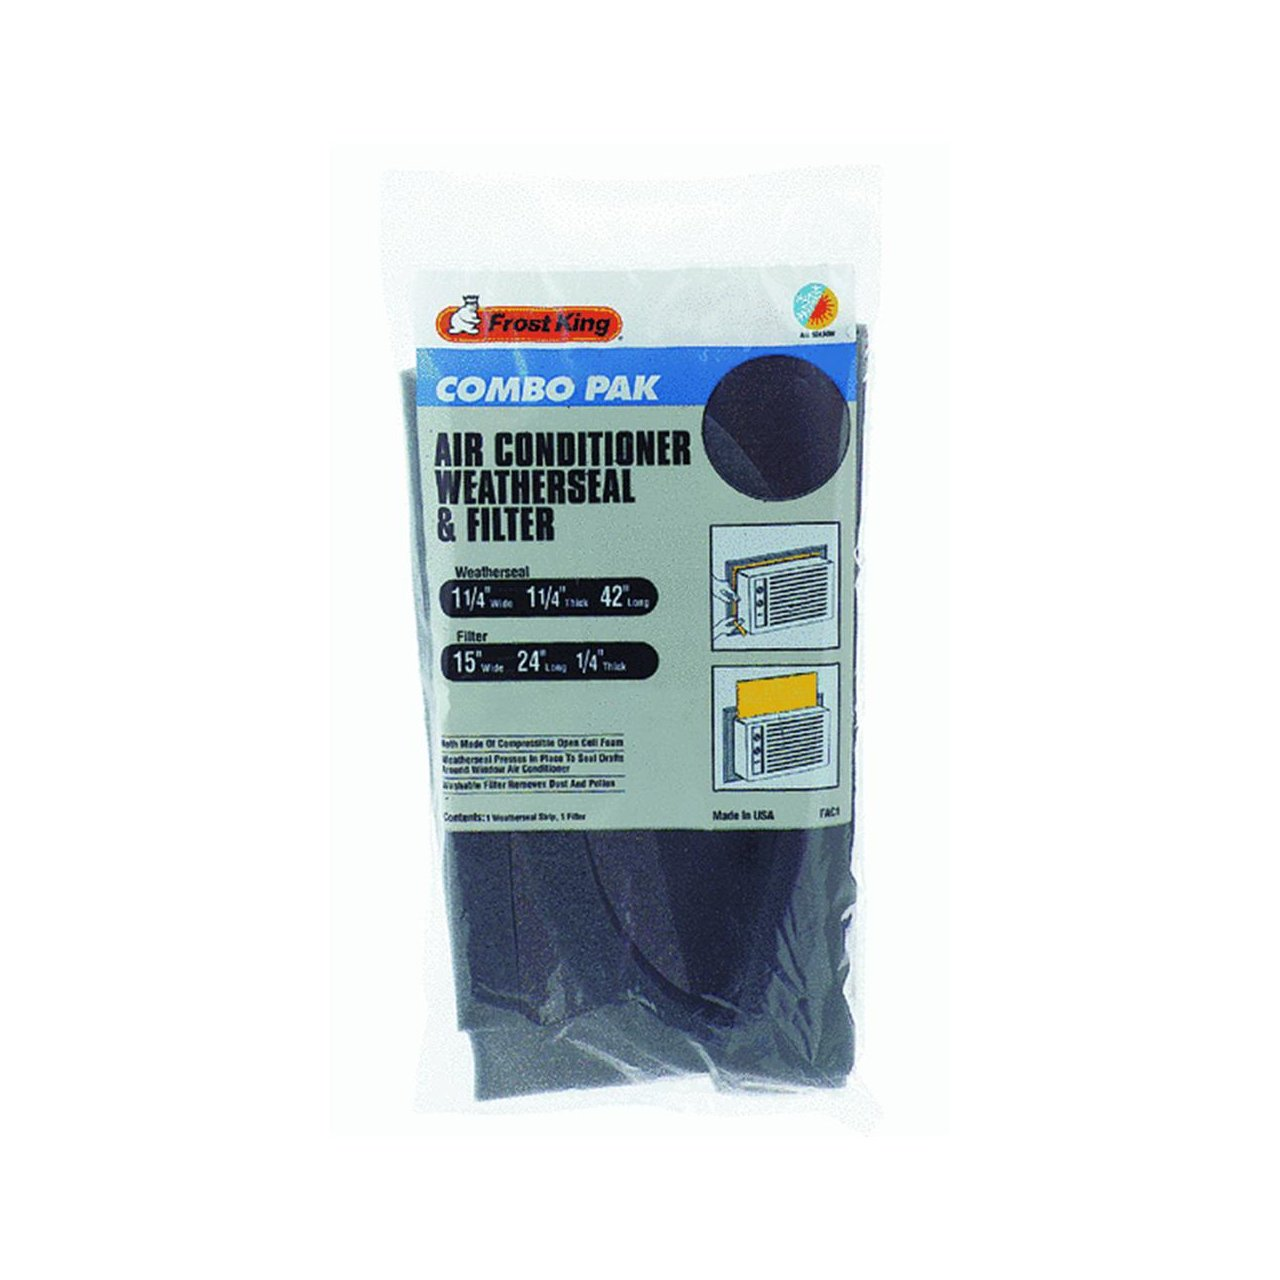 Thermwell Prods. Co. FAC1 Air Conditioner Filter And Weatherseal Kit